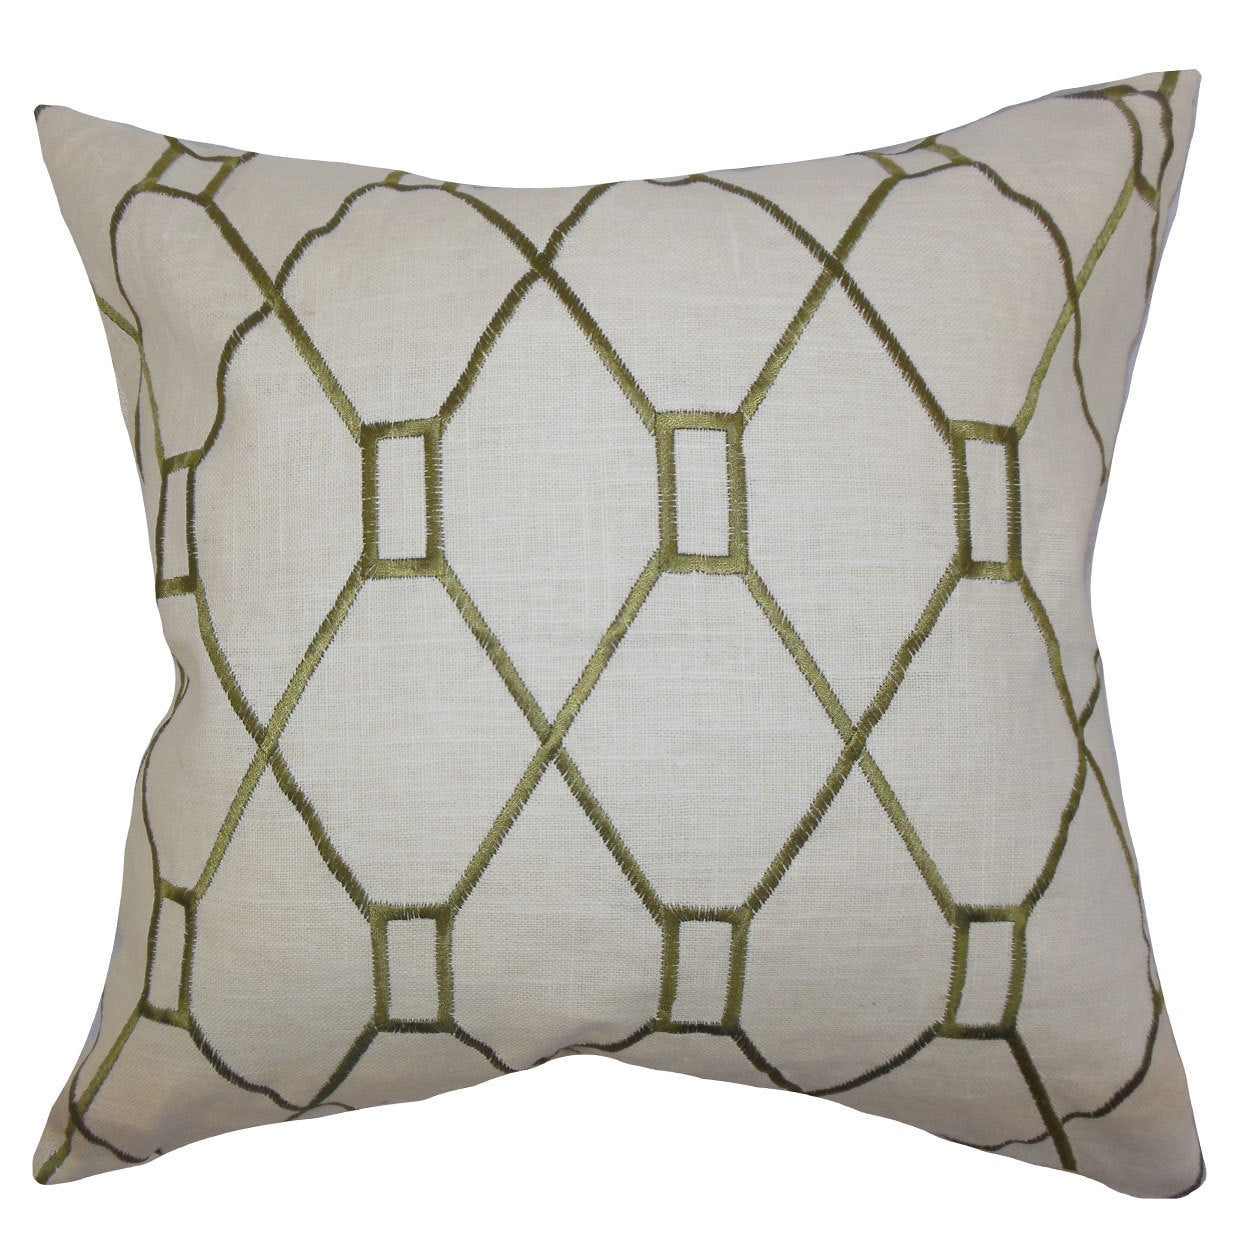 Home Kitchen The Pillow Collection Nevaeh Geometric Bedding Sham Green King 20 X 36 Bedding